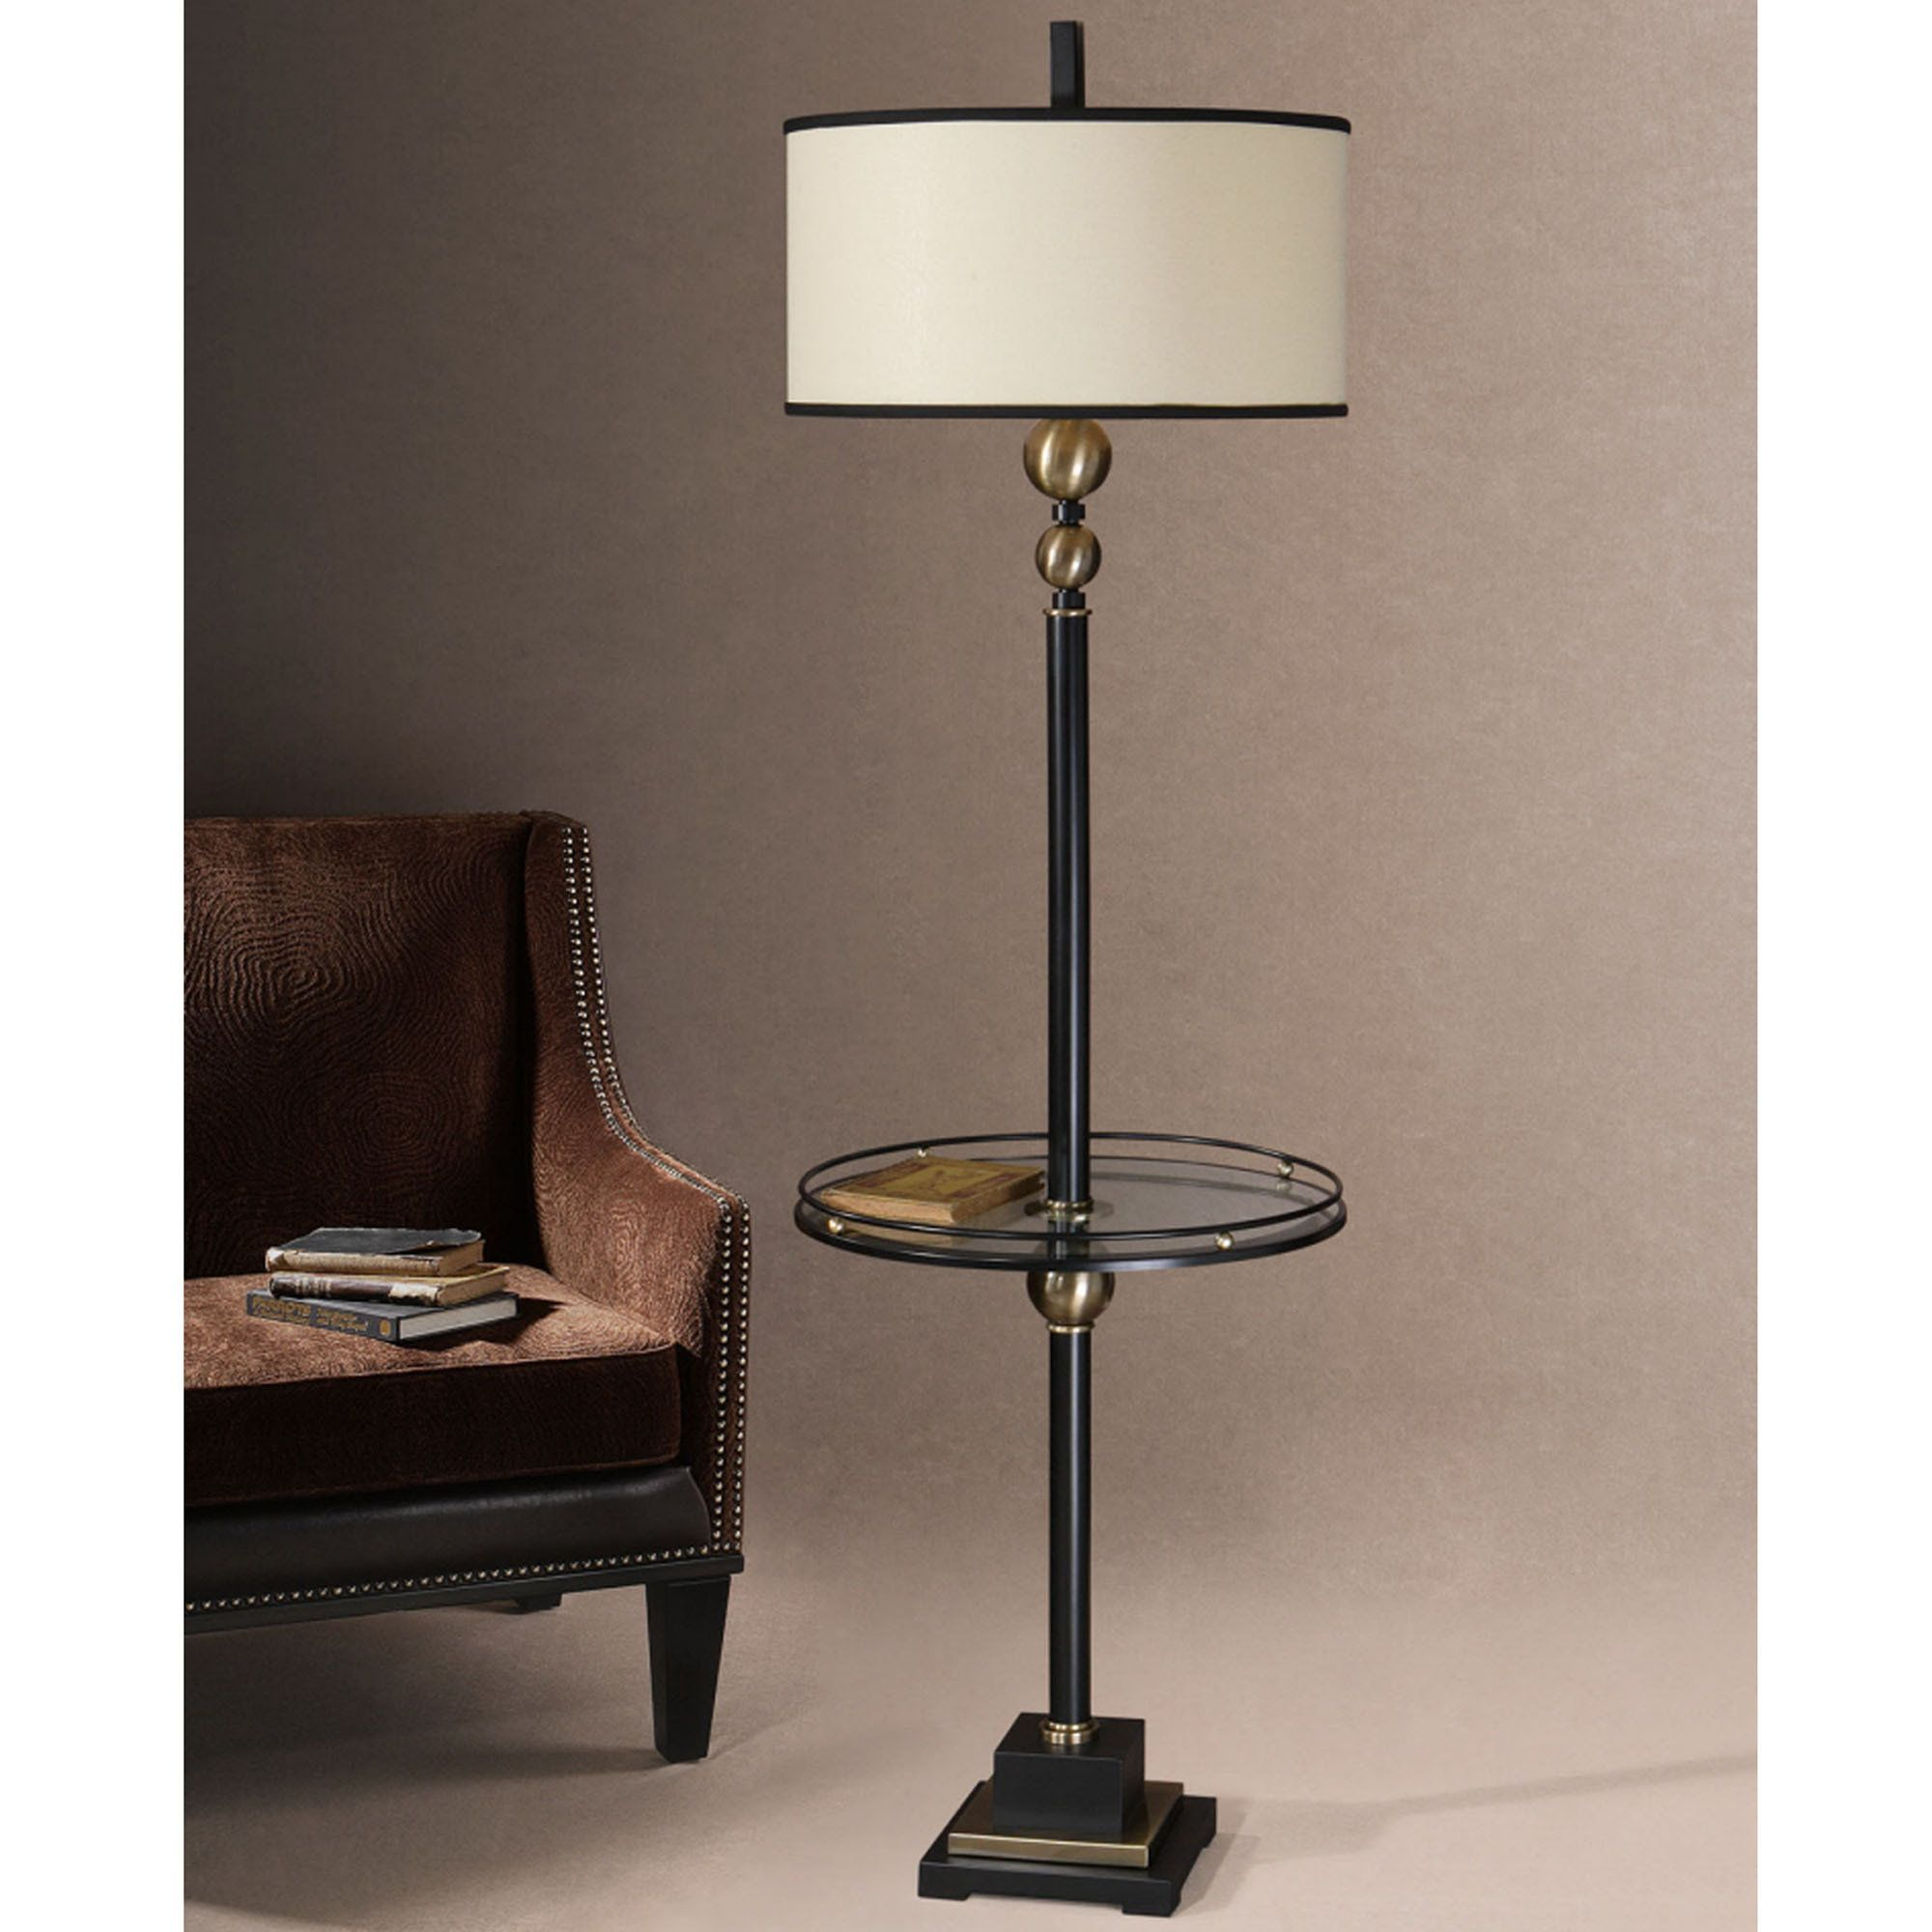 Joaquin Floor Lamp With Attached Glass Table Bodenlampe Lampentisch Rote Stehlampe